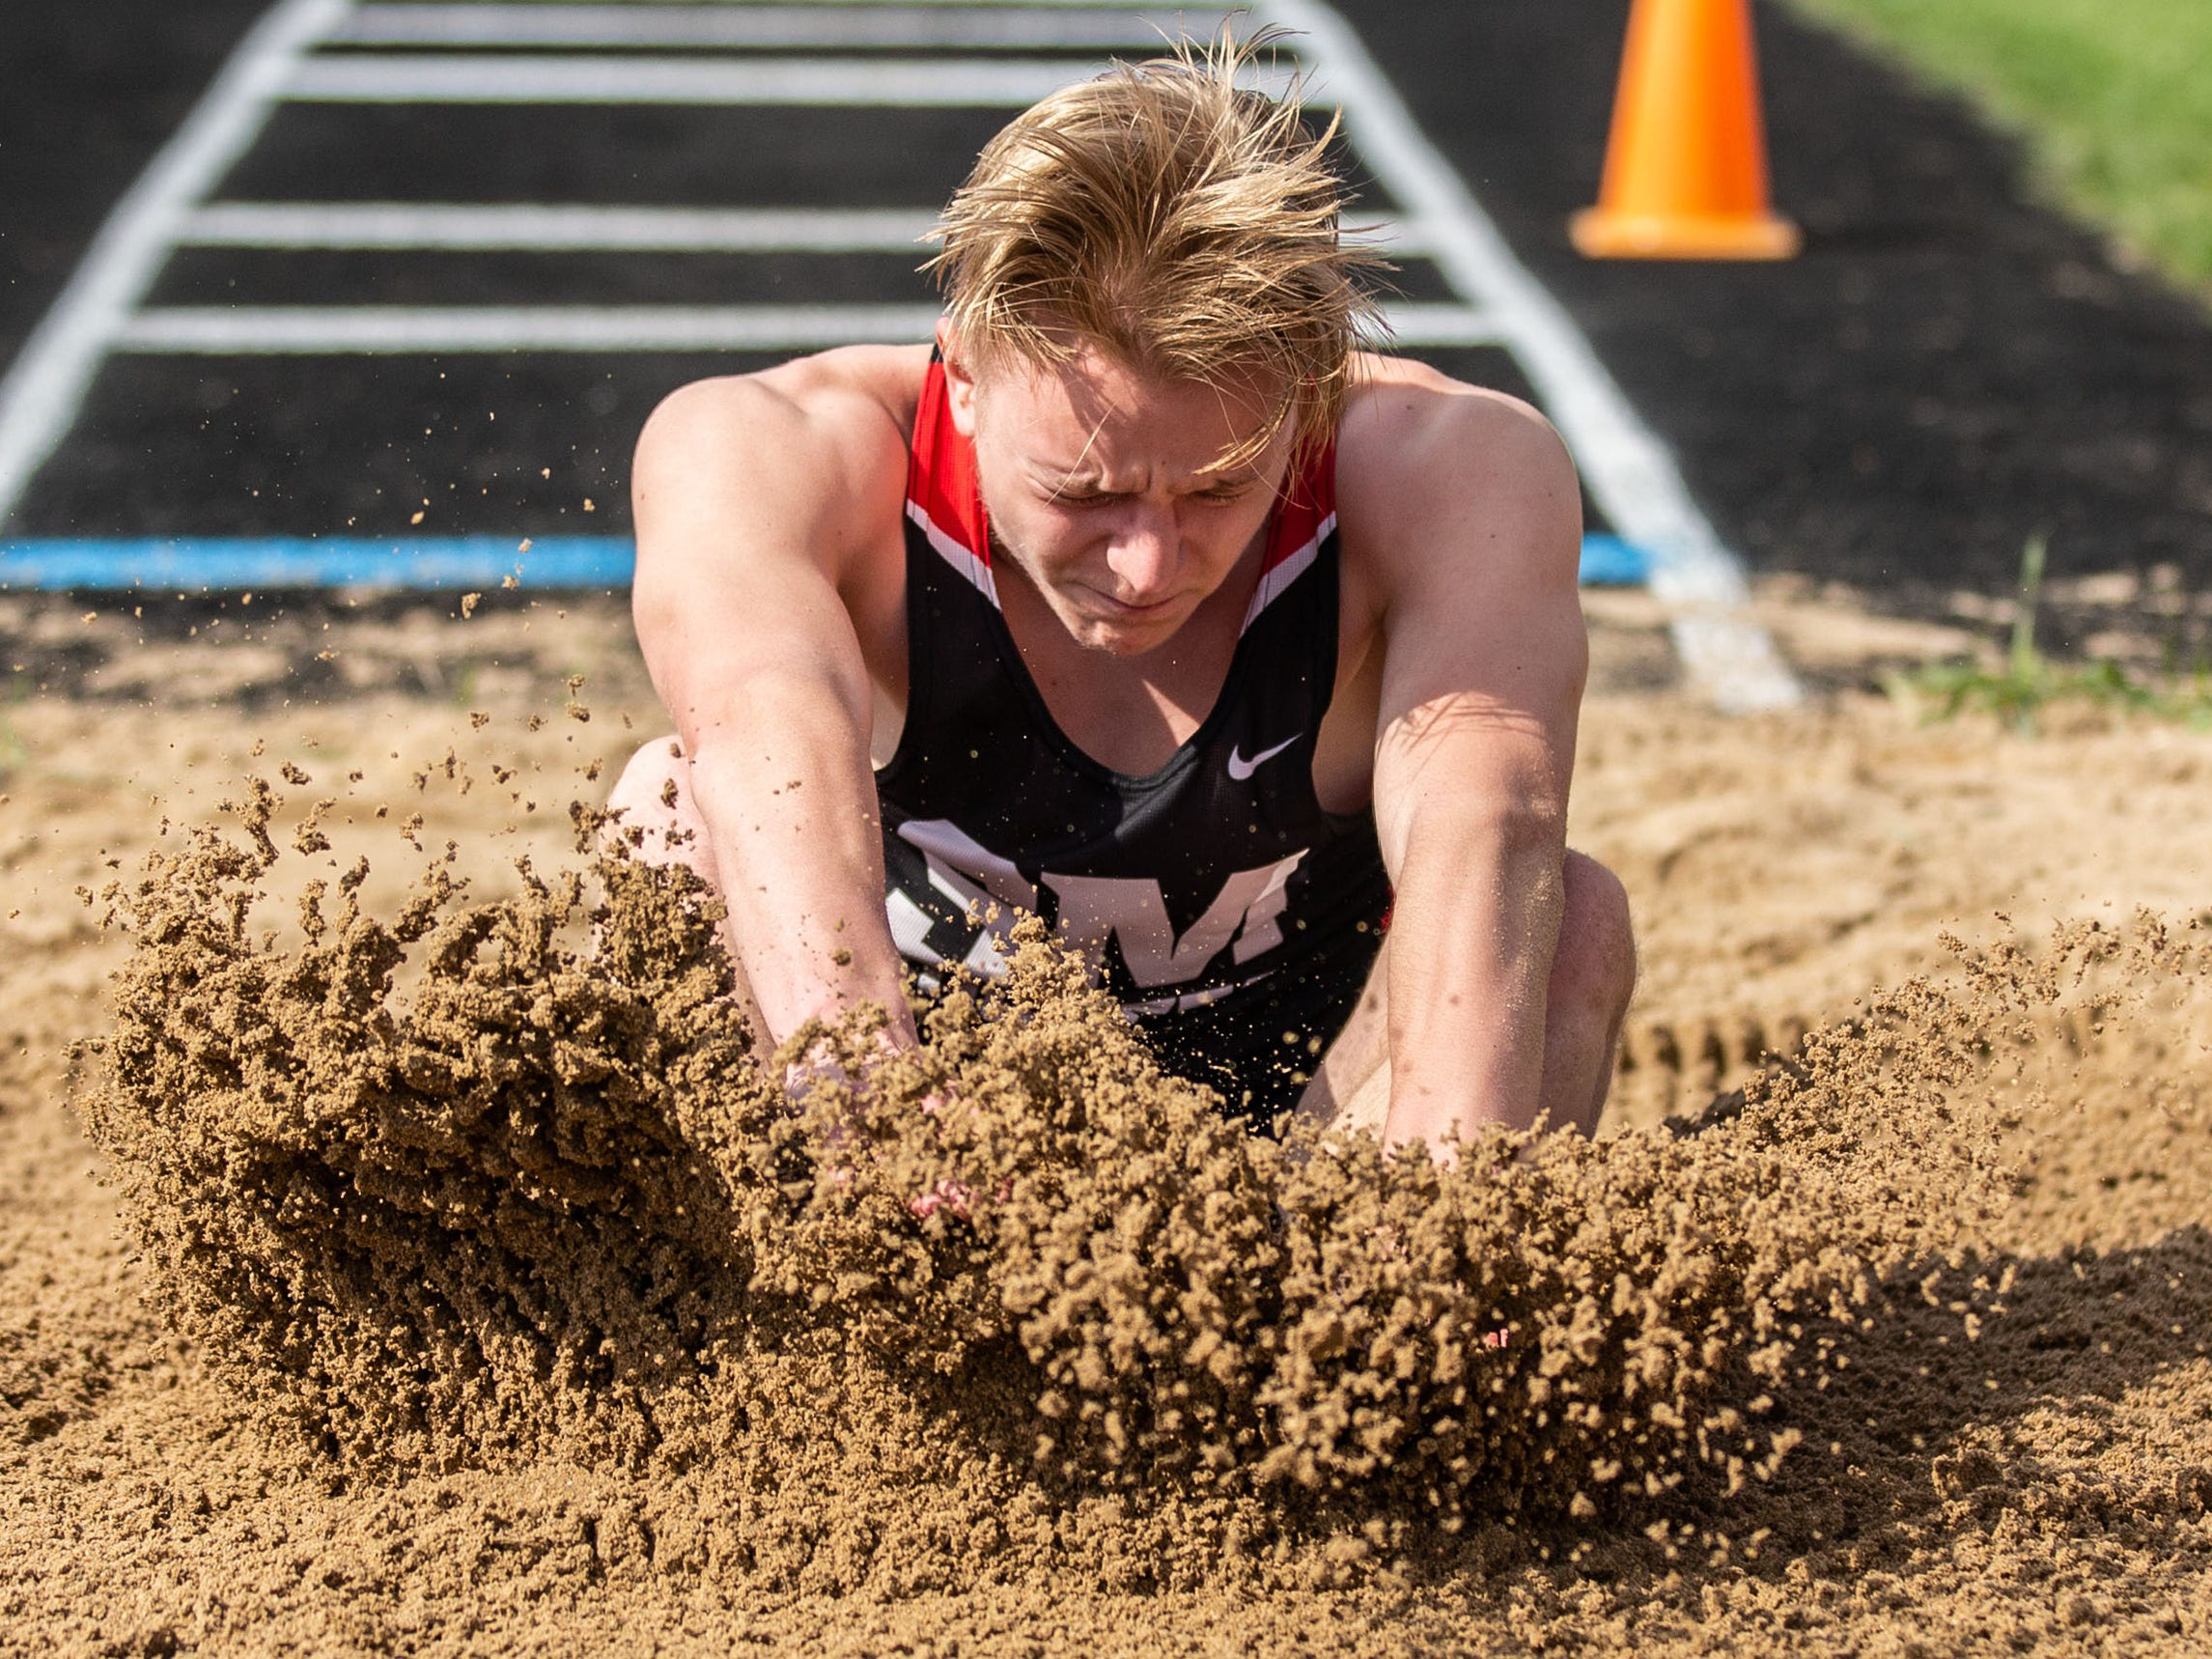 South Milwaukee junior Dylan Moll competes in the long jump at the 2019 Myrhum Invitational track and field meet in Hartland on Saturday, May 4.